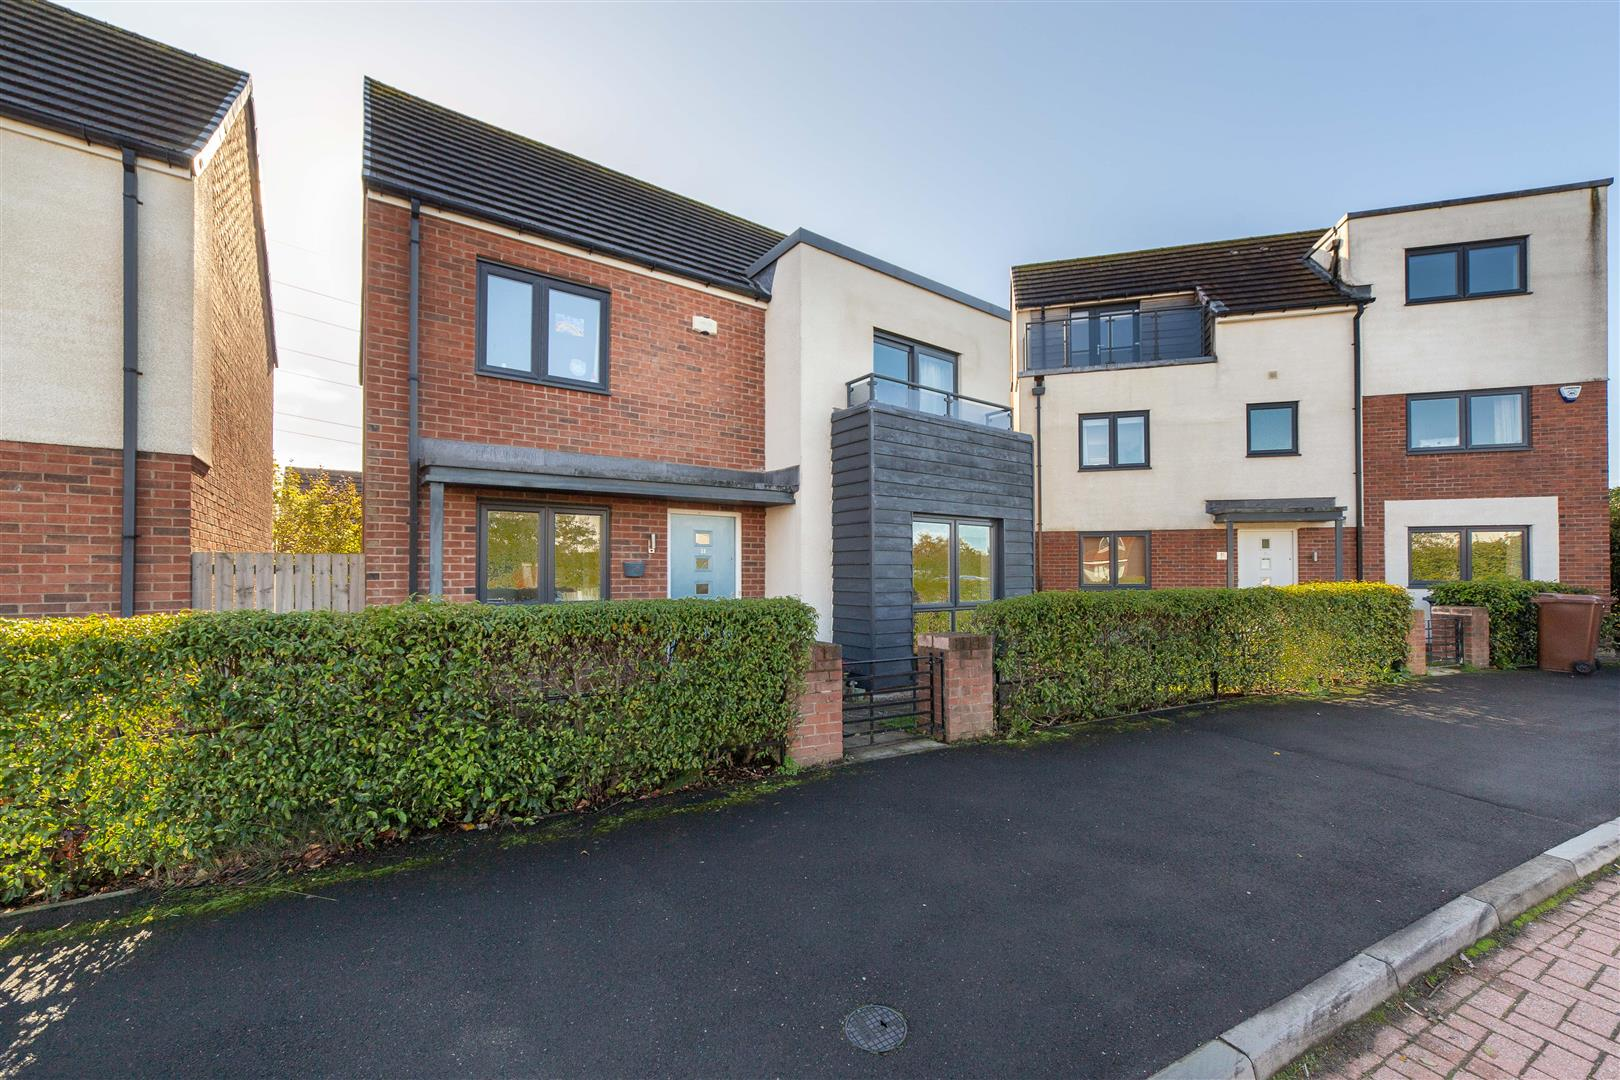 4 bed detached house for sale in Newcastle Upon Tyne, NE13 9BD - Property Image 1